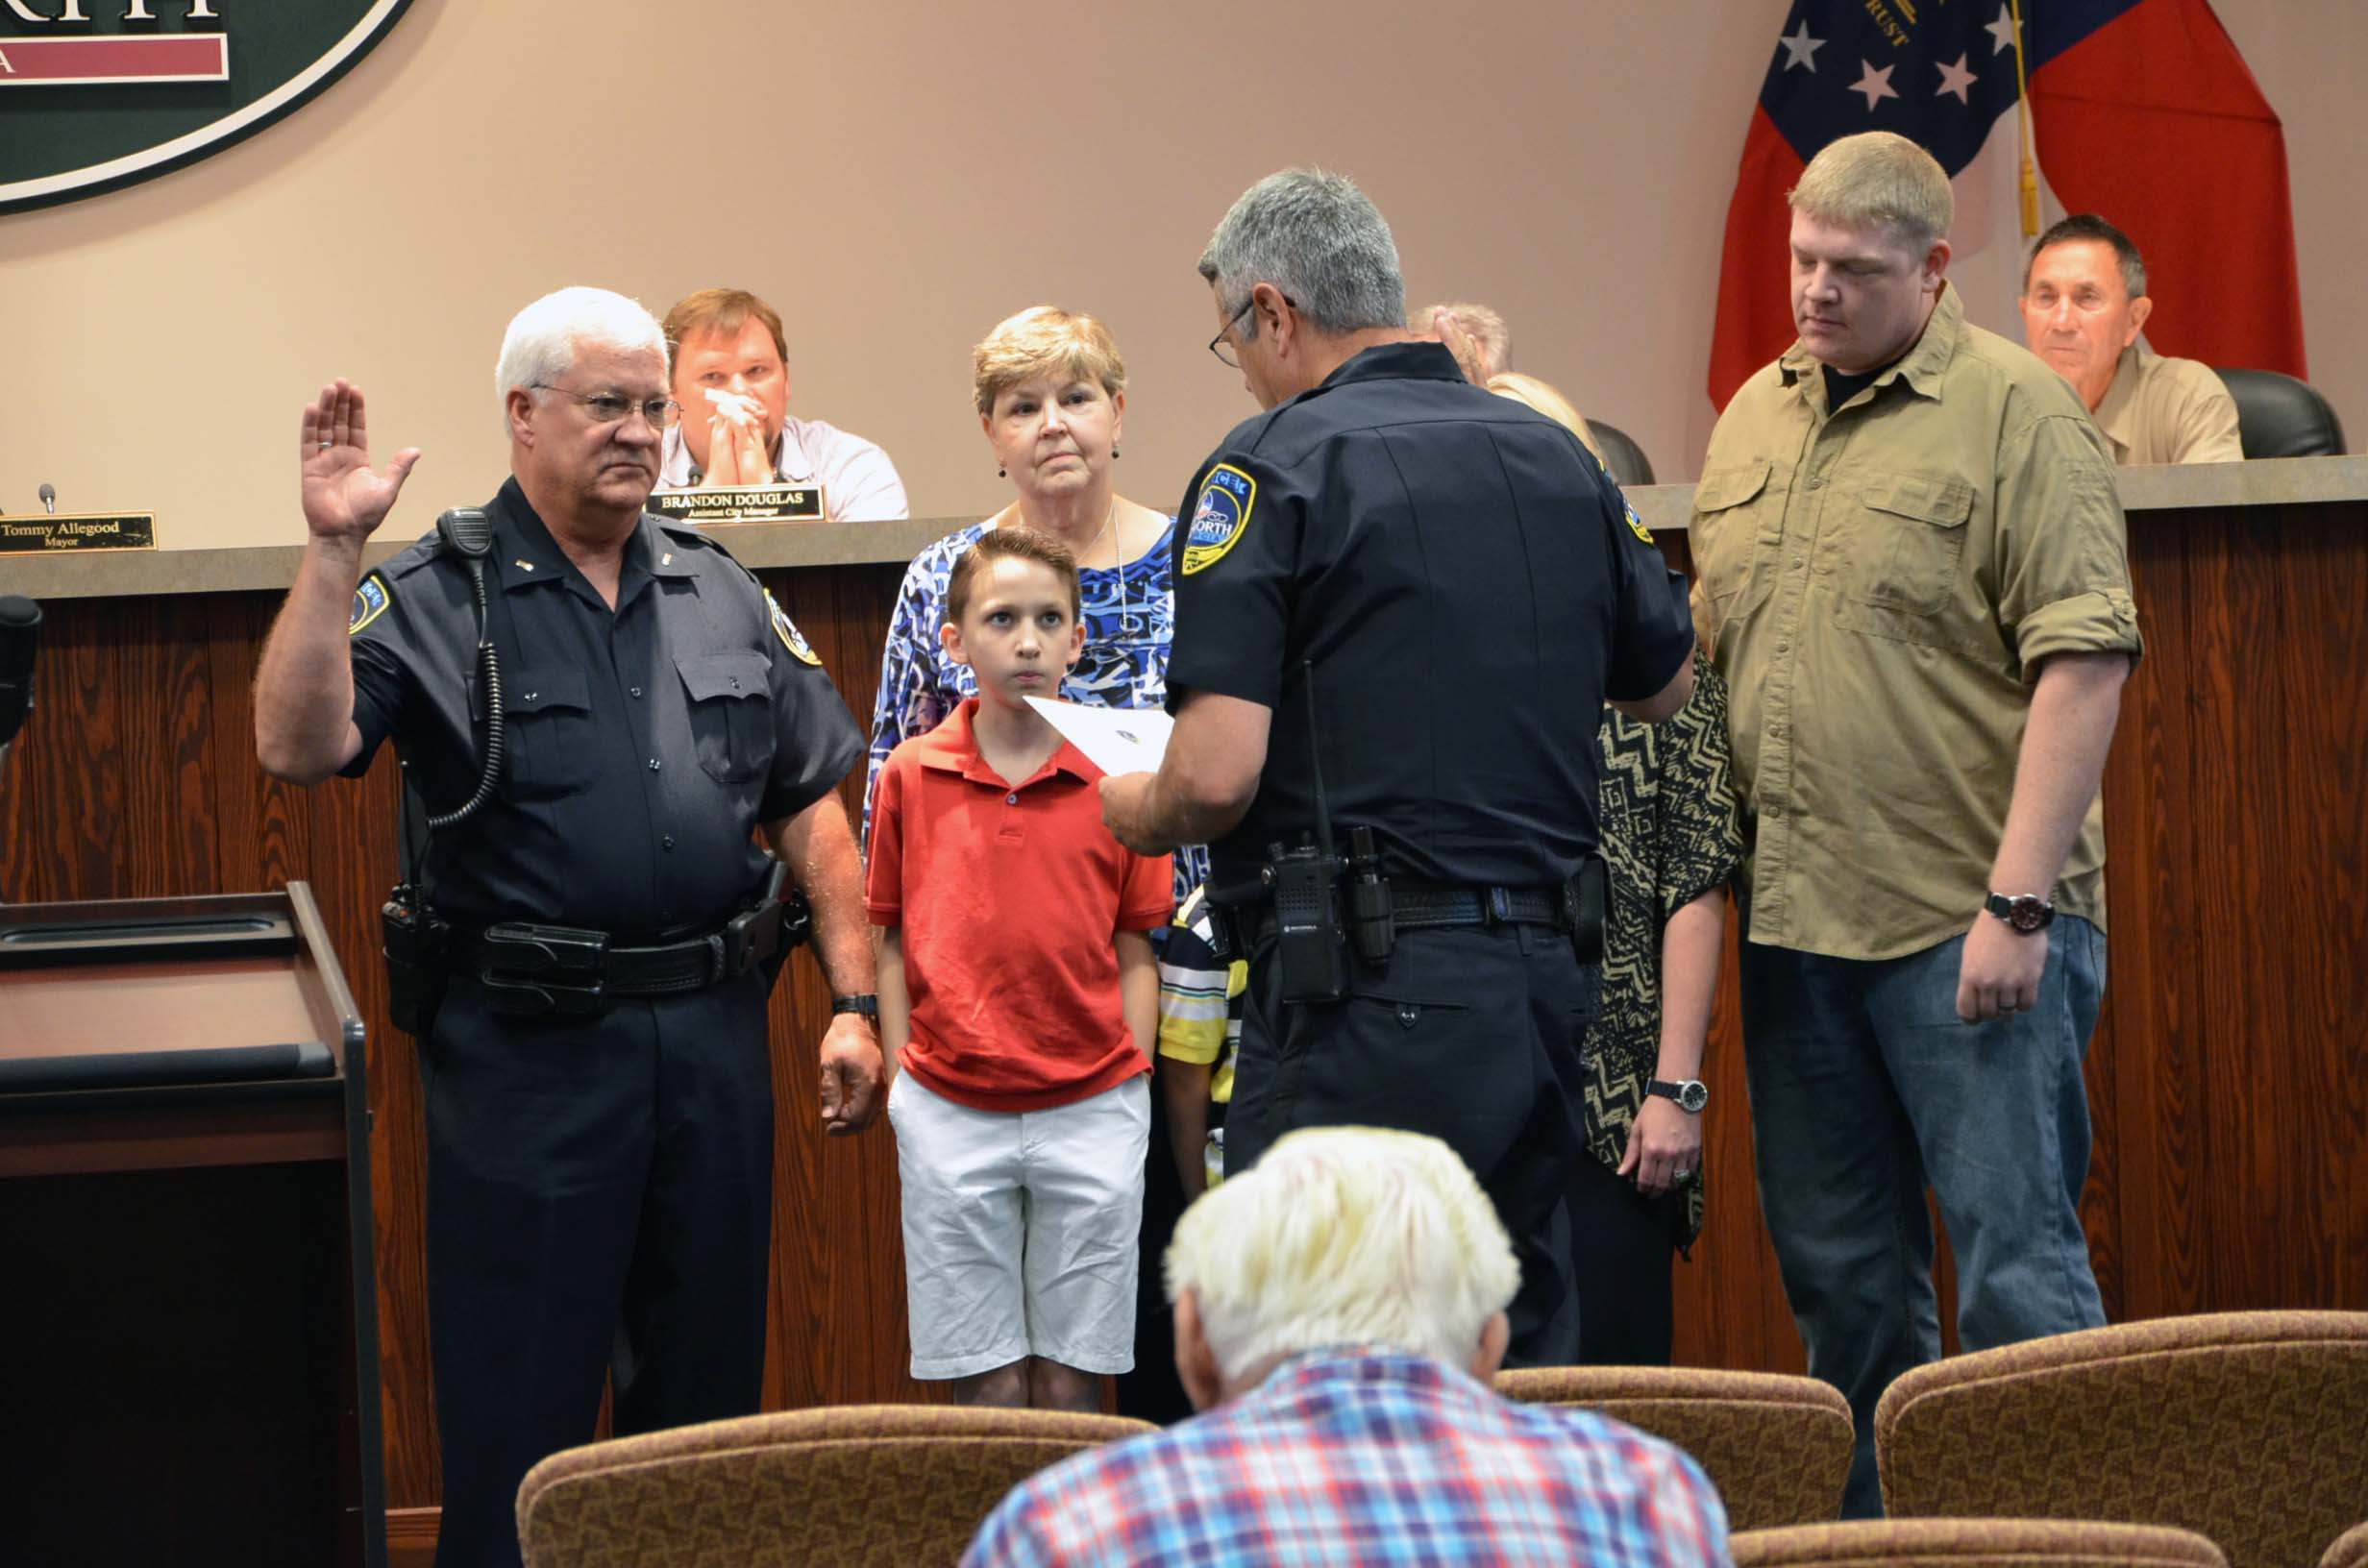 Oath of Office to Rank of Lieutenant for Kenny King 4